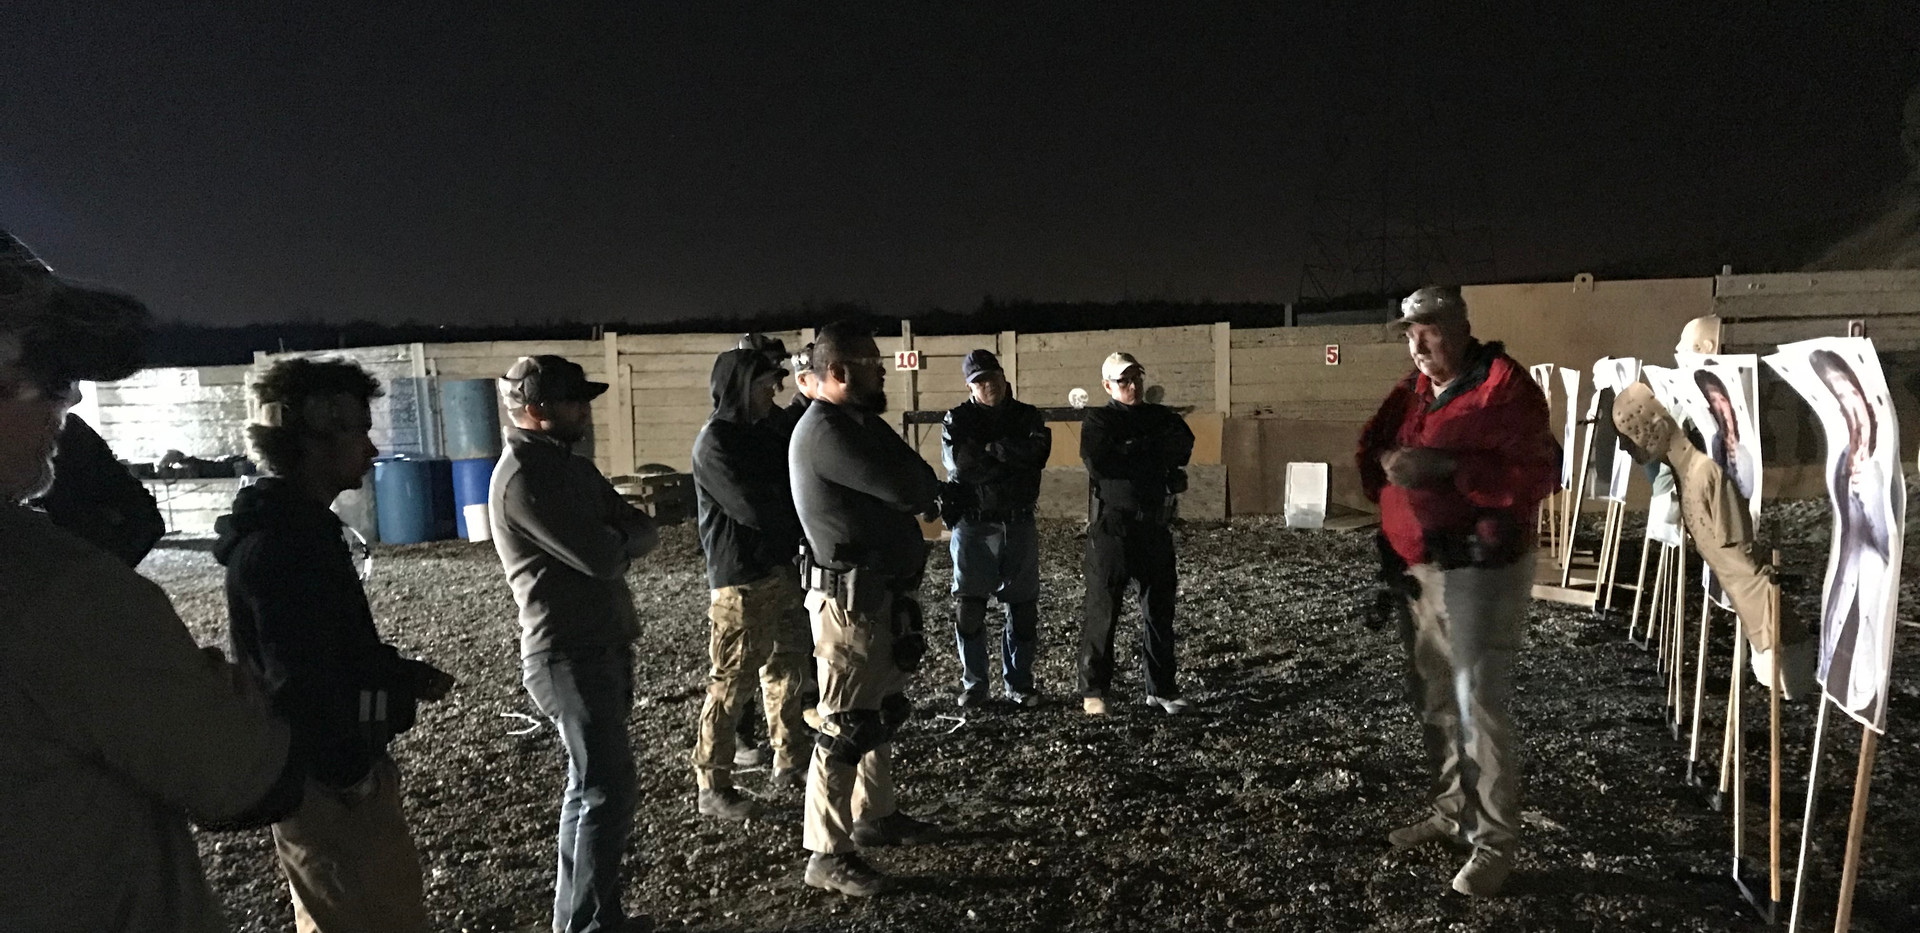 Dan Gray at Low-Light Gunfighting